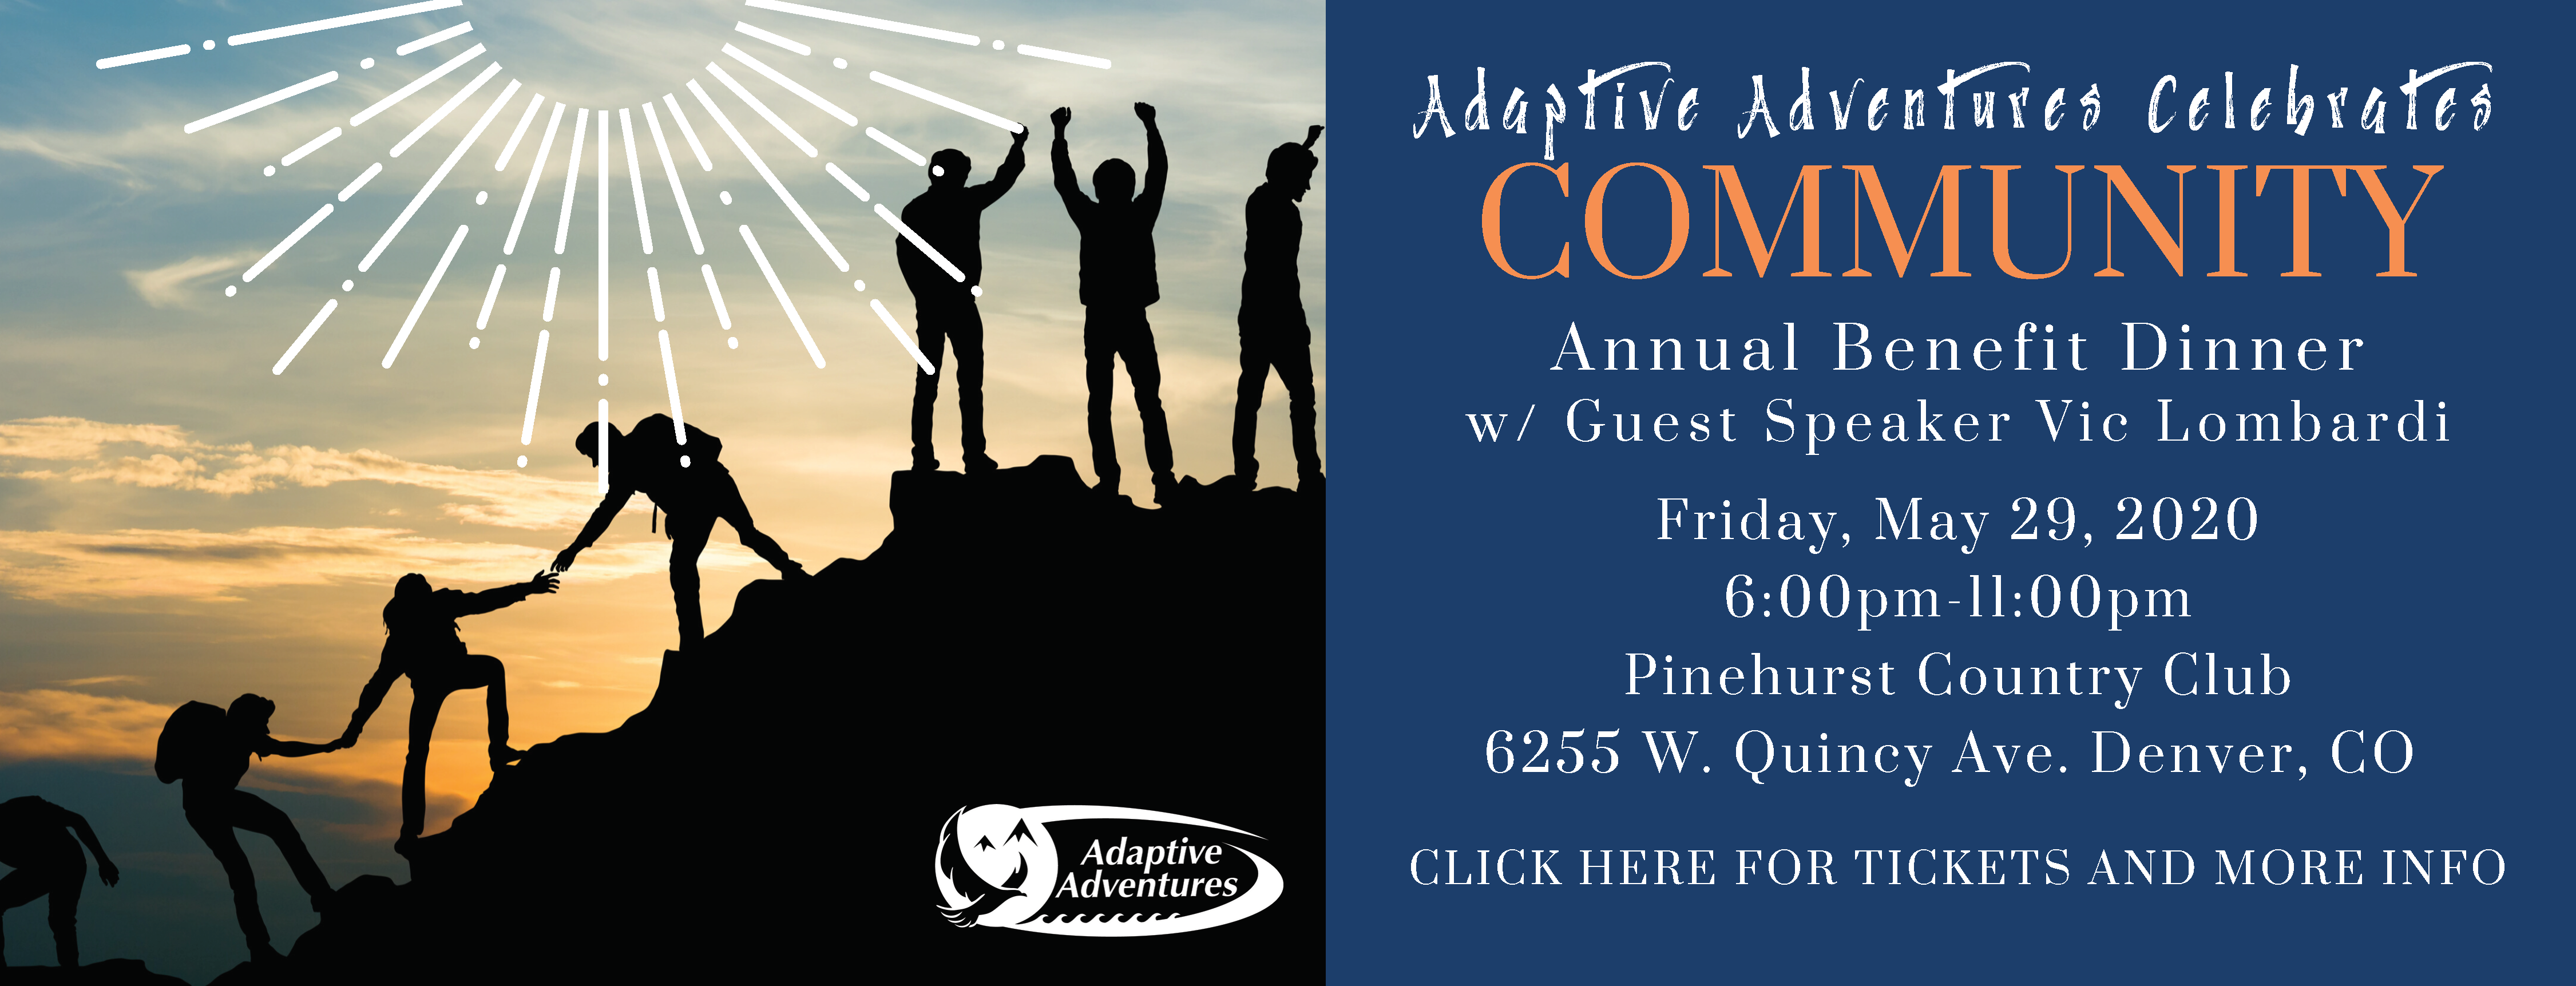 Adaptive Adventures Celebrates Community Event